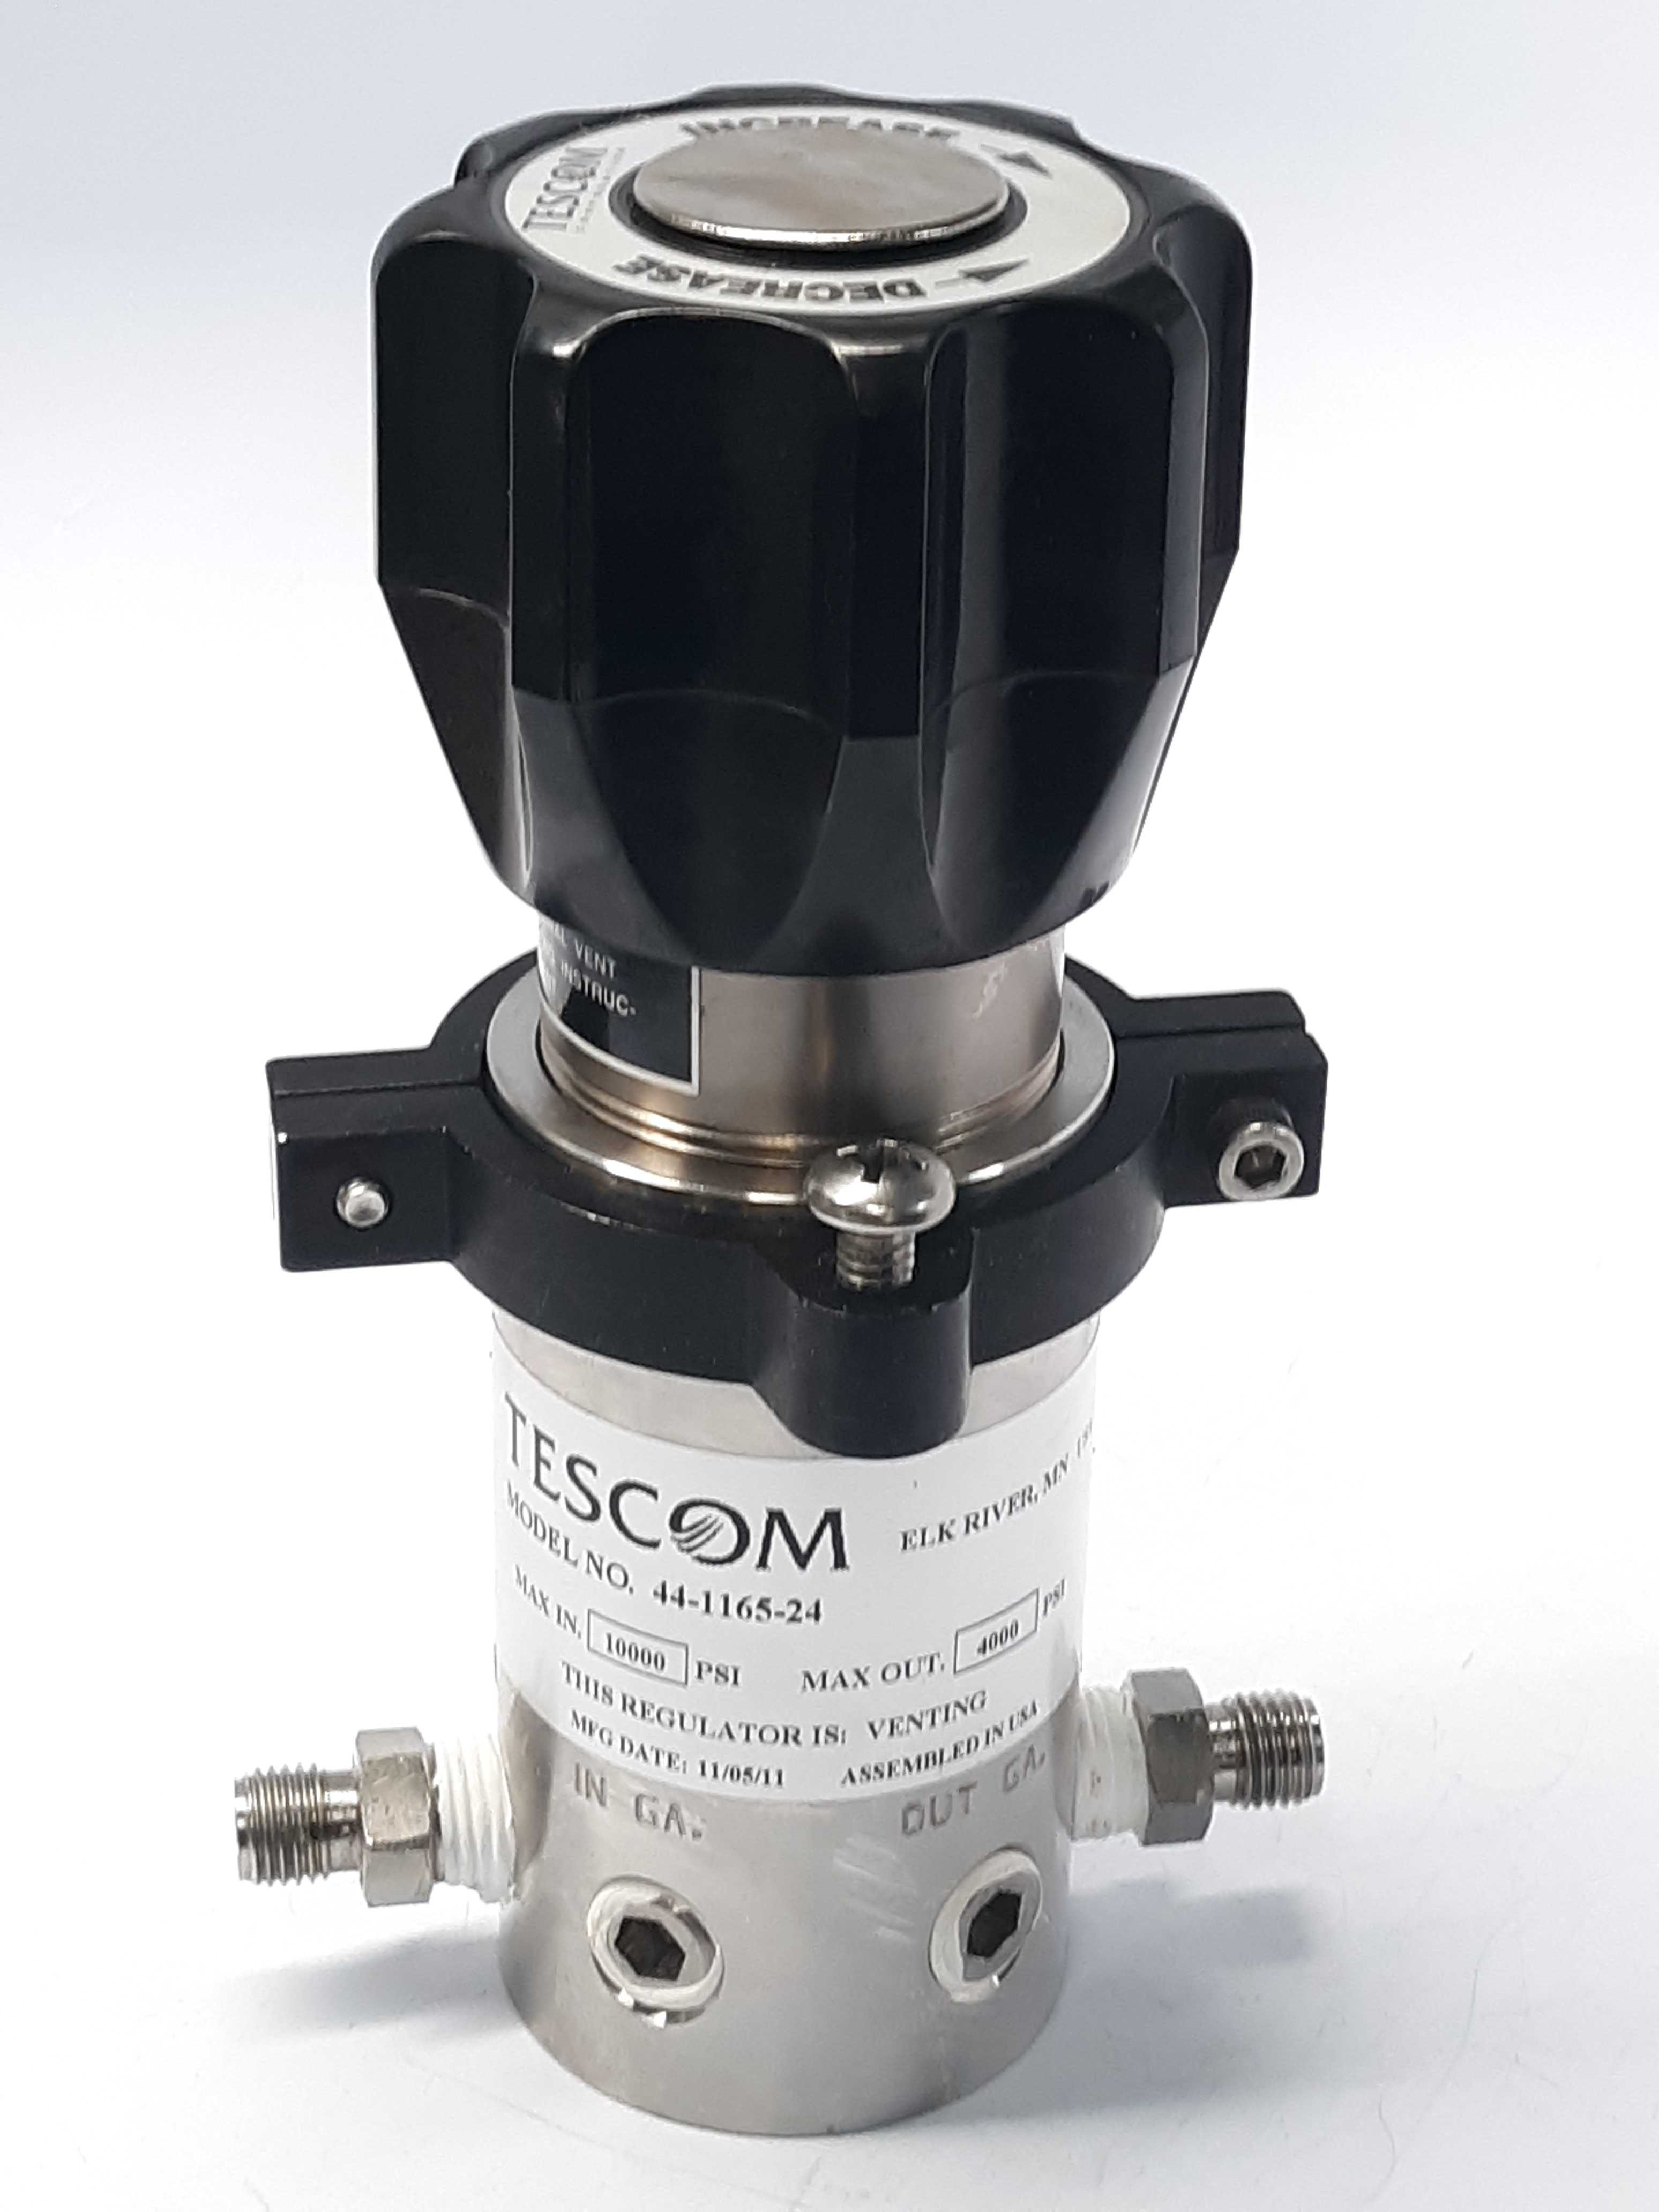 Tescom 44-1165-24 Regulator